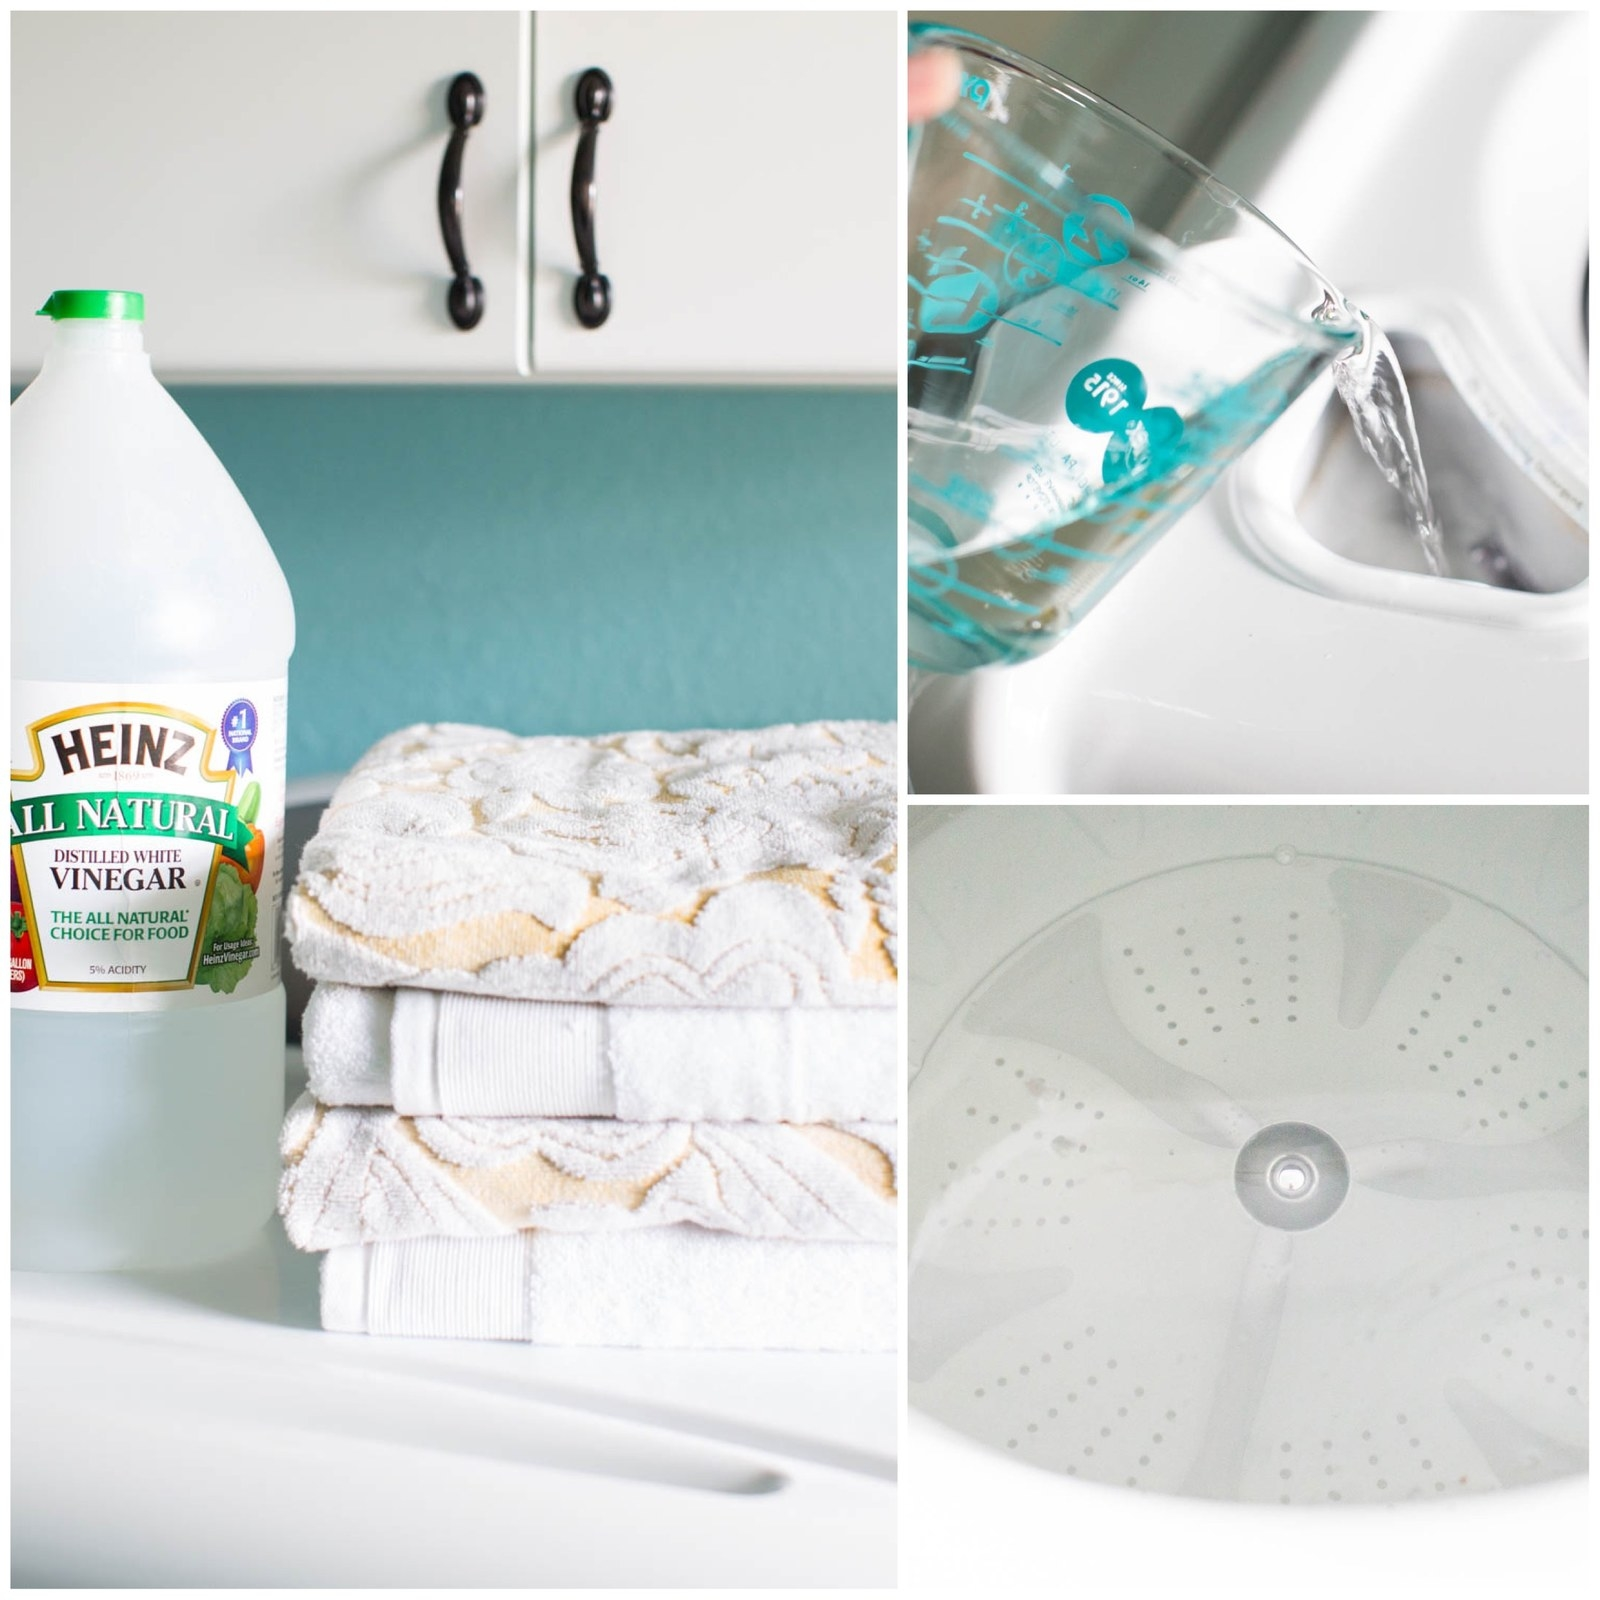 A collage showing the process of running vinegar through the machine (right in the detergent holder)